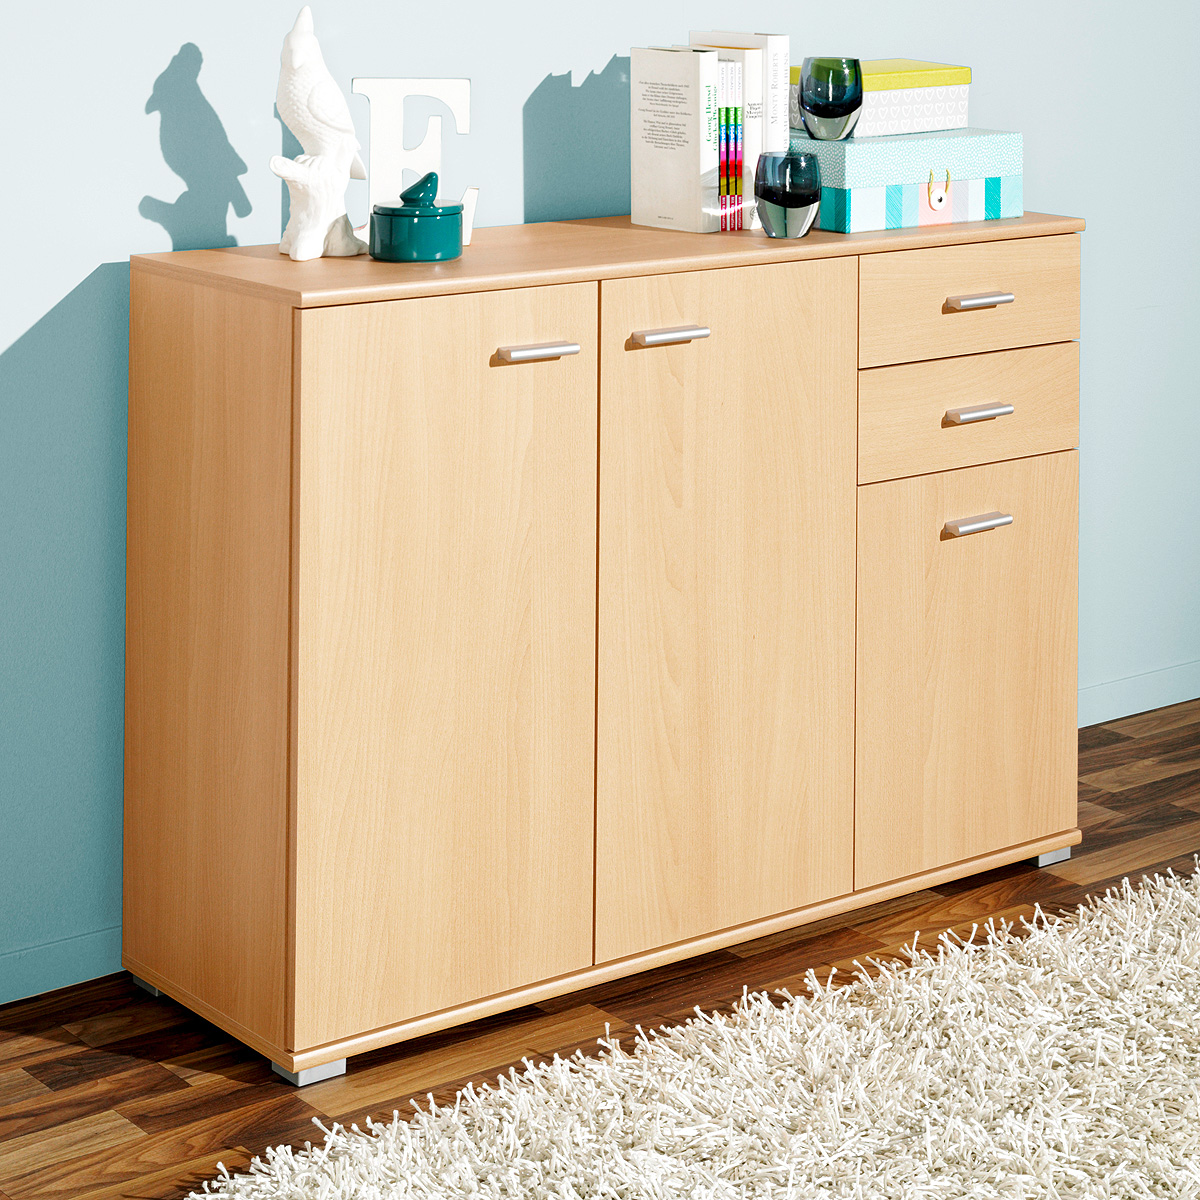 kommode p92 sideboard anrichte schrank wei eiche buche. Black Bedroom Furniture Sets. Home Design Ideas